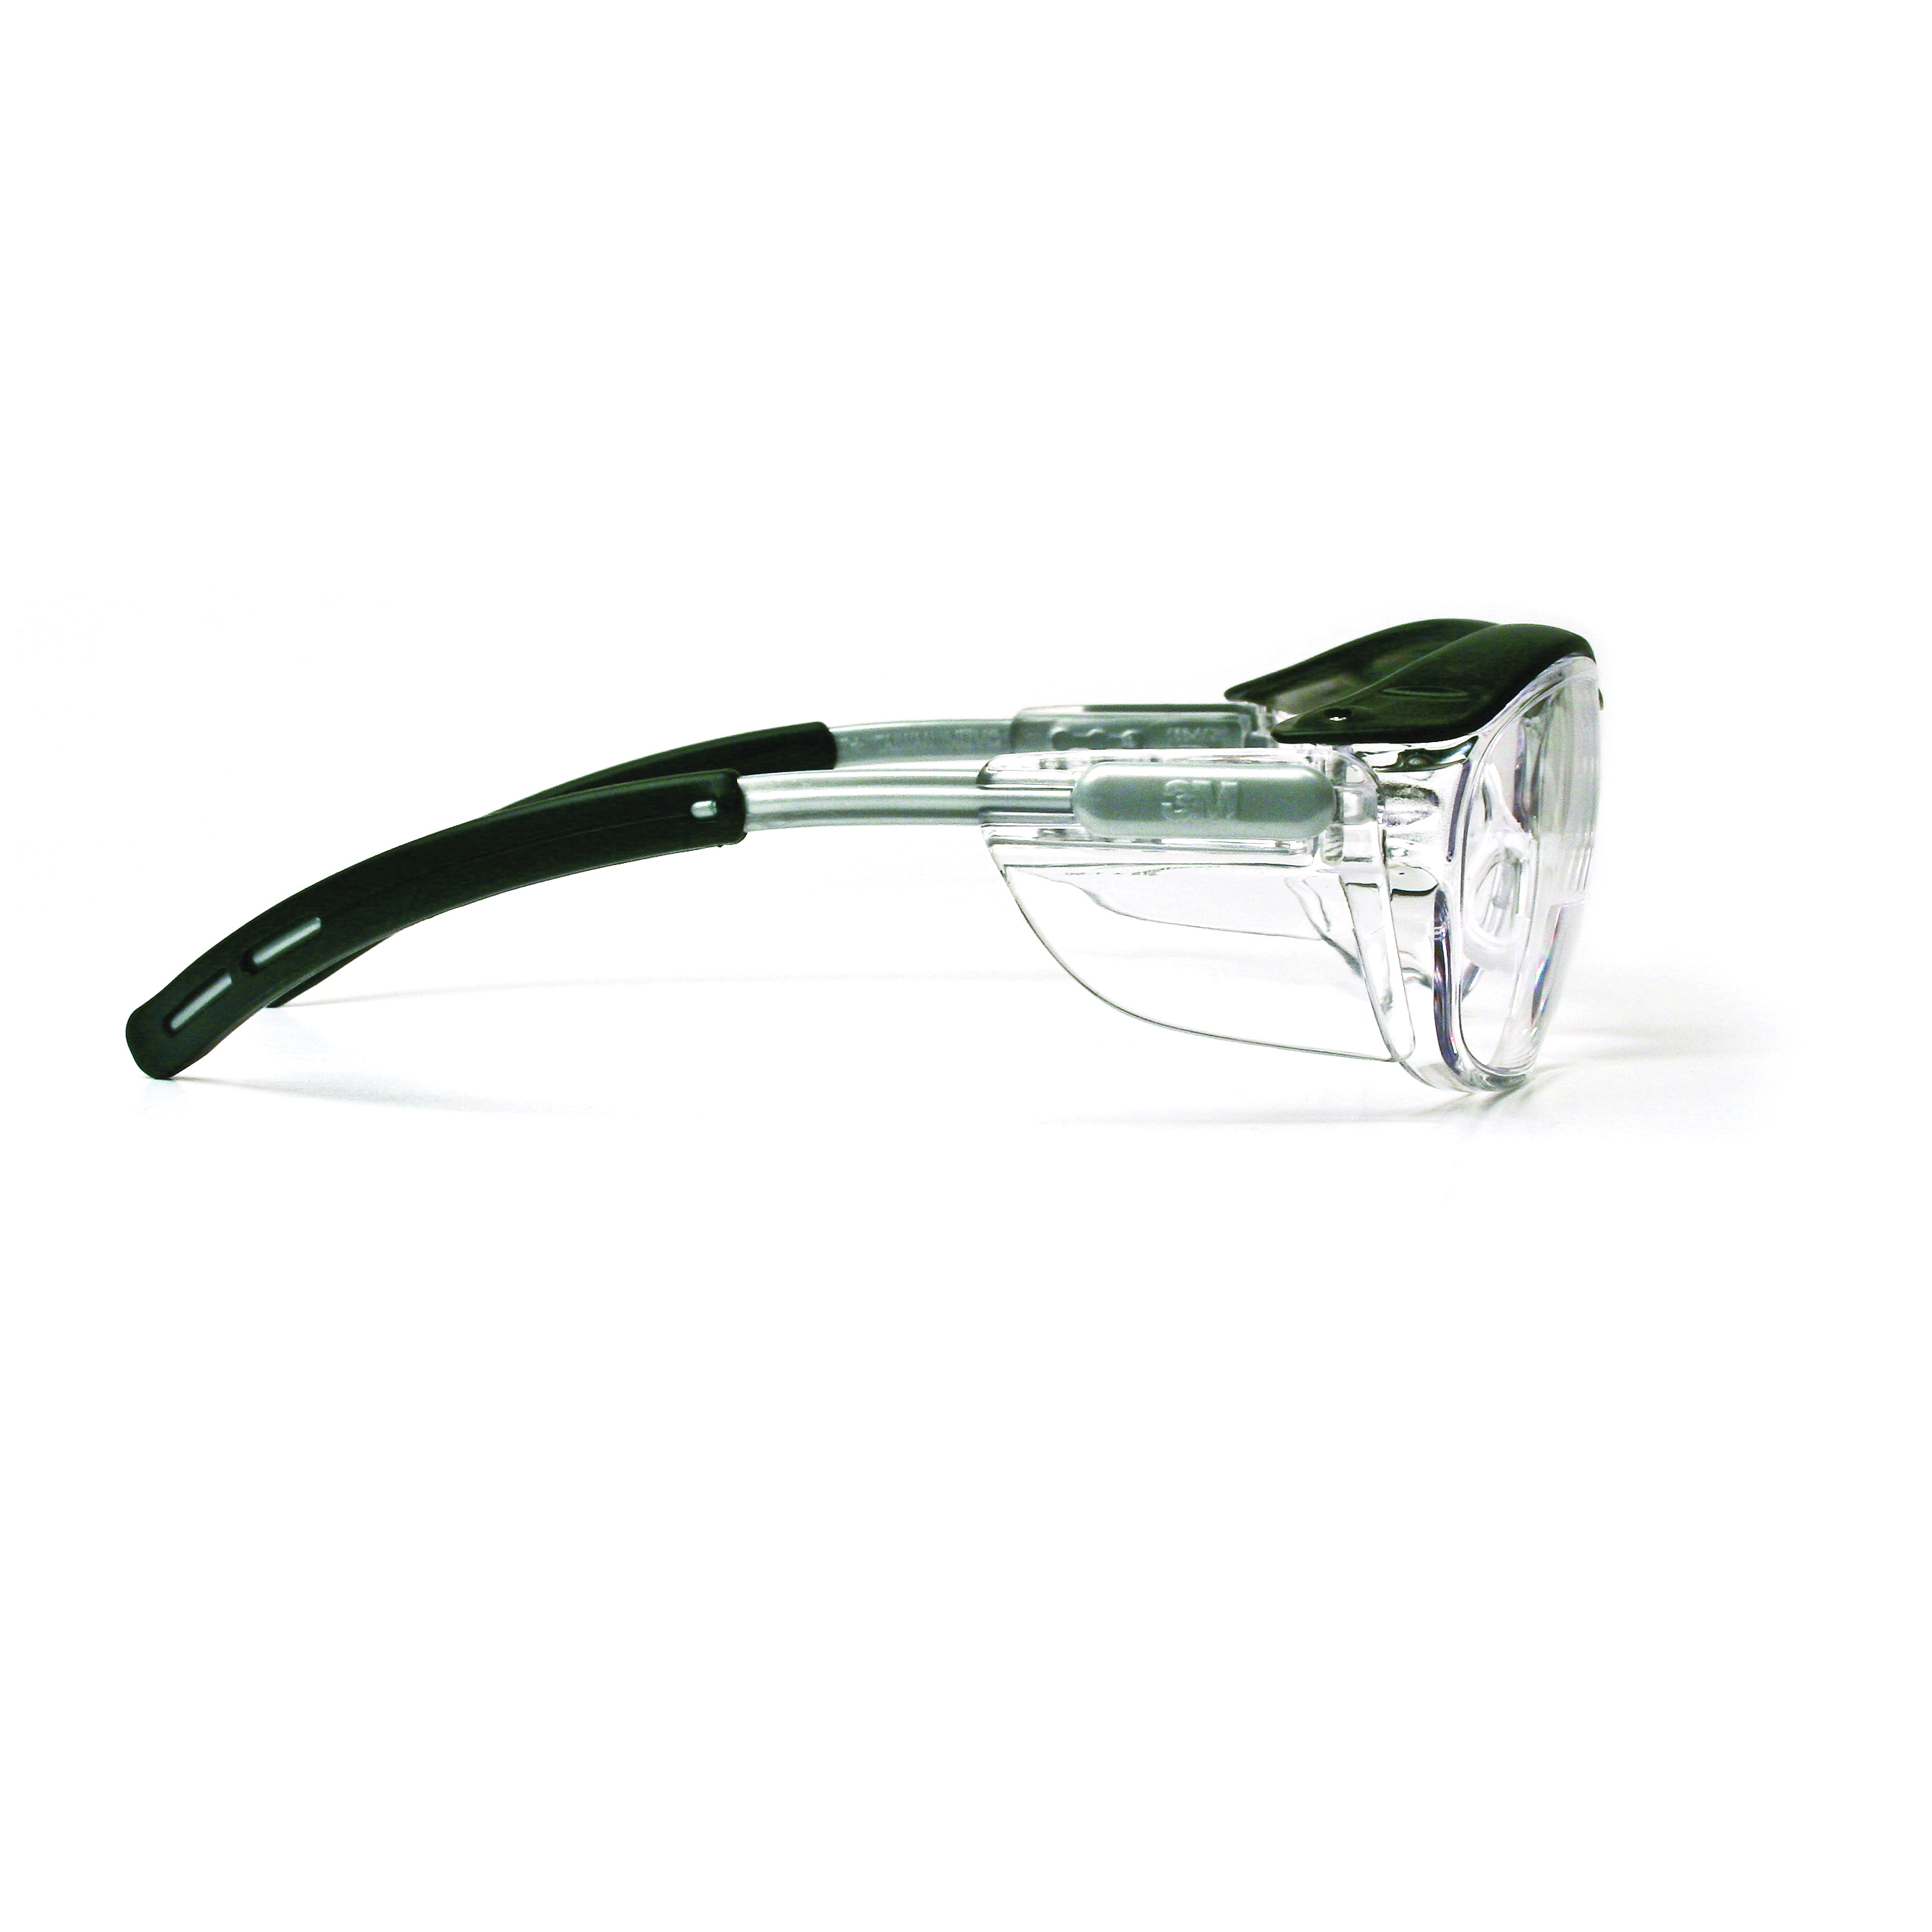 3M™ Nuvo™ 078371-62062 Bi-Focal Lens Lightweight Reader Protective Eyewear, 1.5 Diopter, Clear Lens, Gray, Plastic Frame, Polycarbonate Lens, 99.9 % UV Protection, ANSI Z87.1-2015, CSA Z94.3-2007